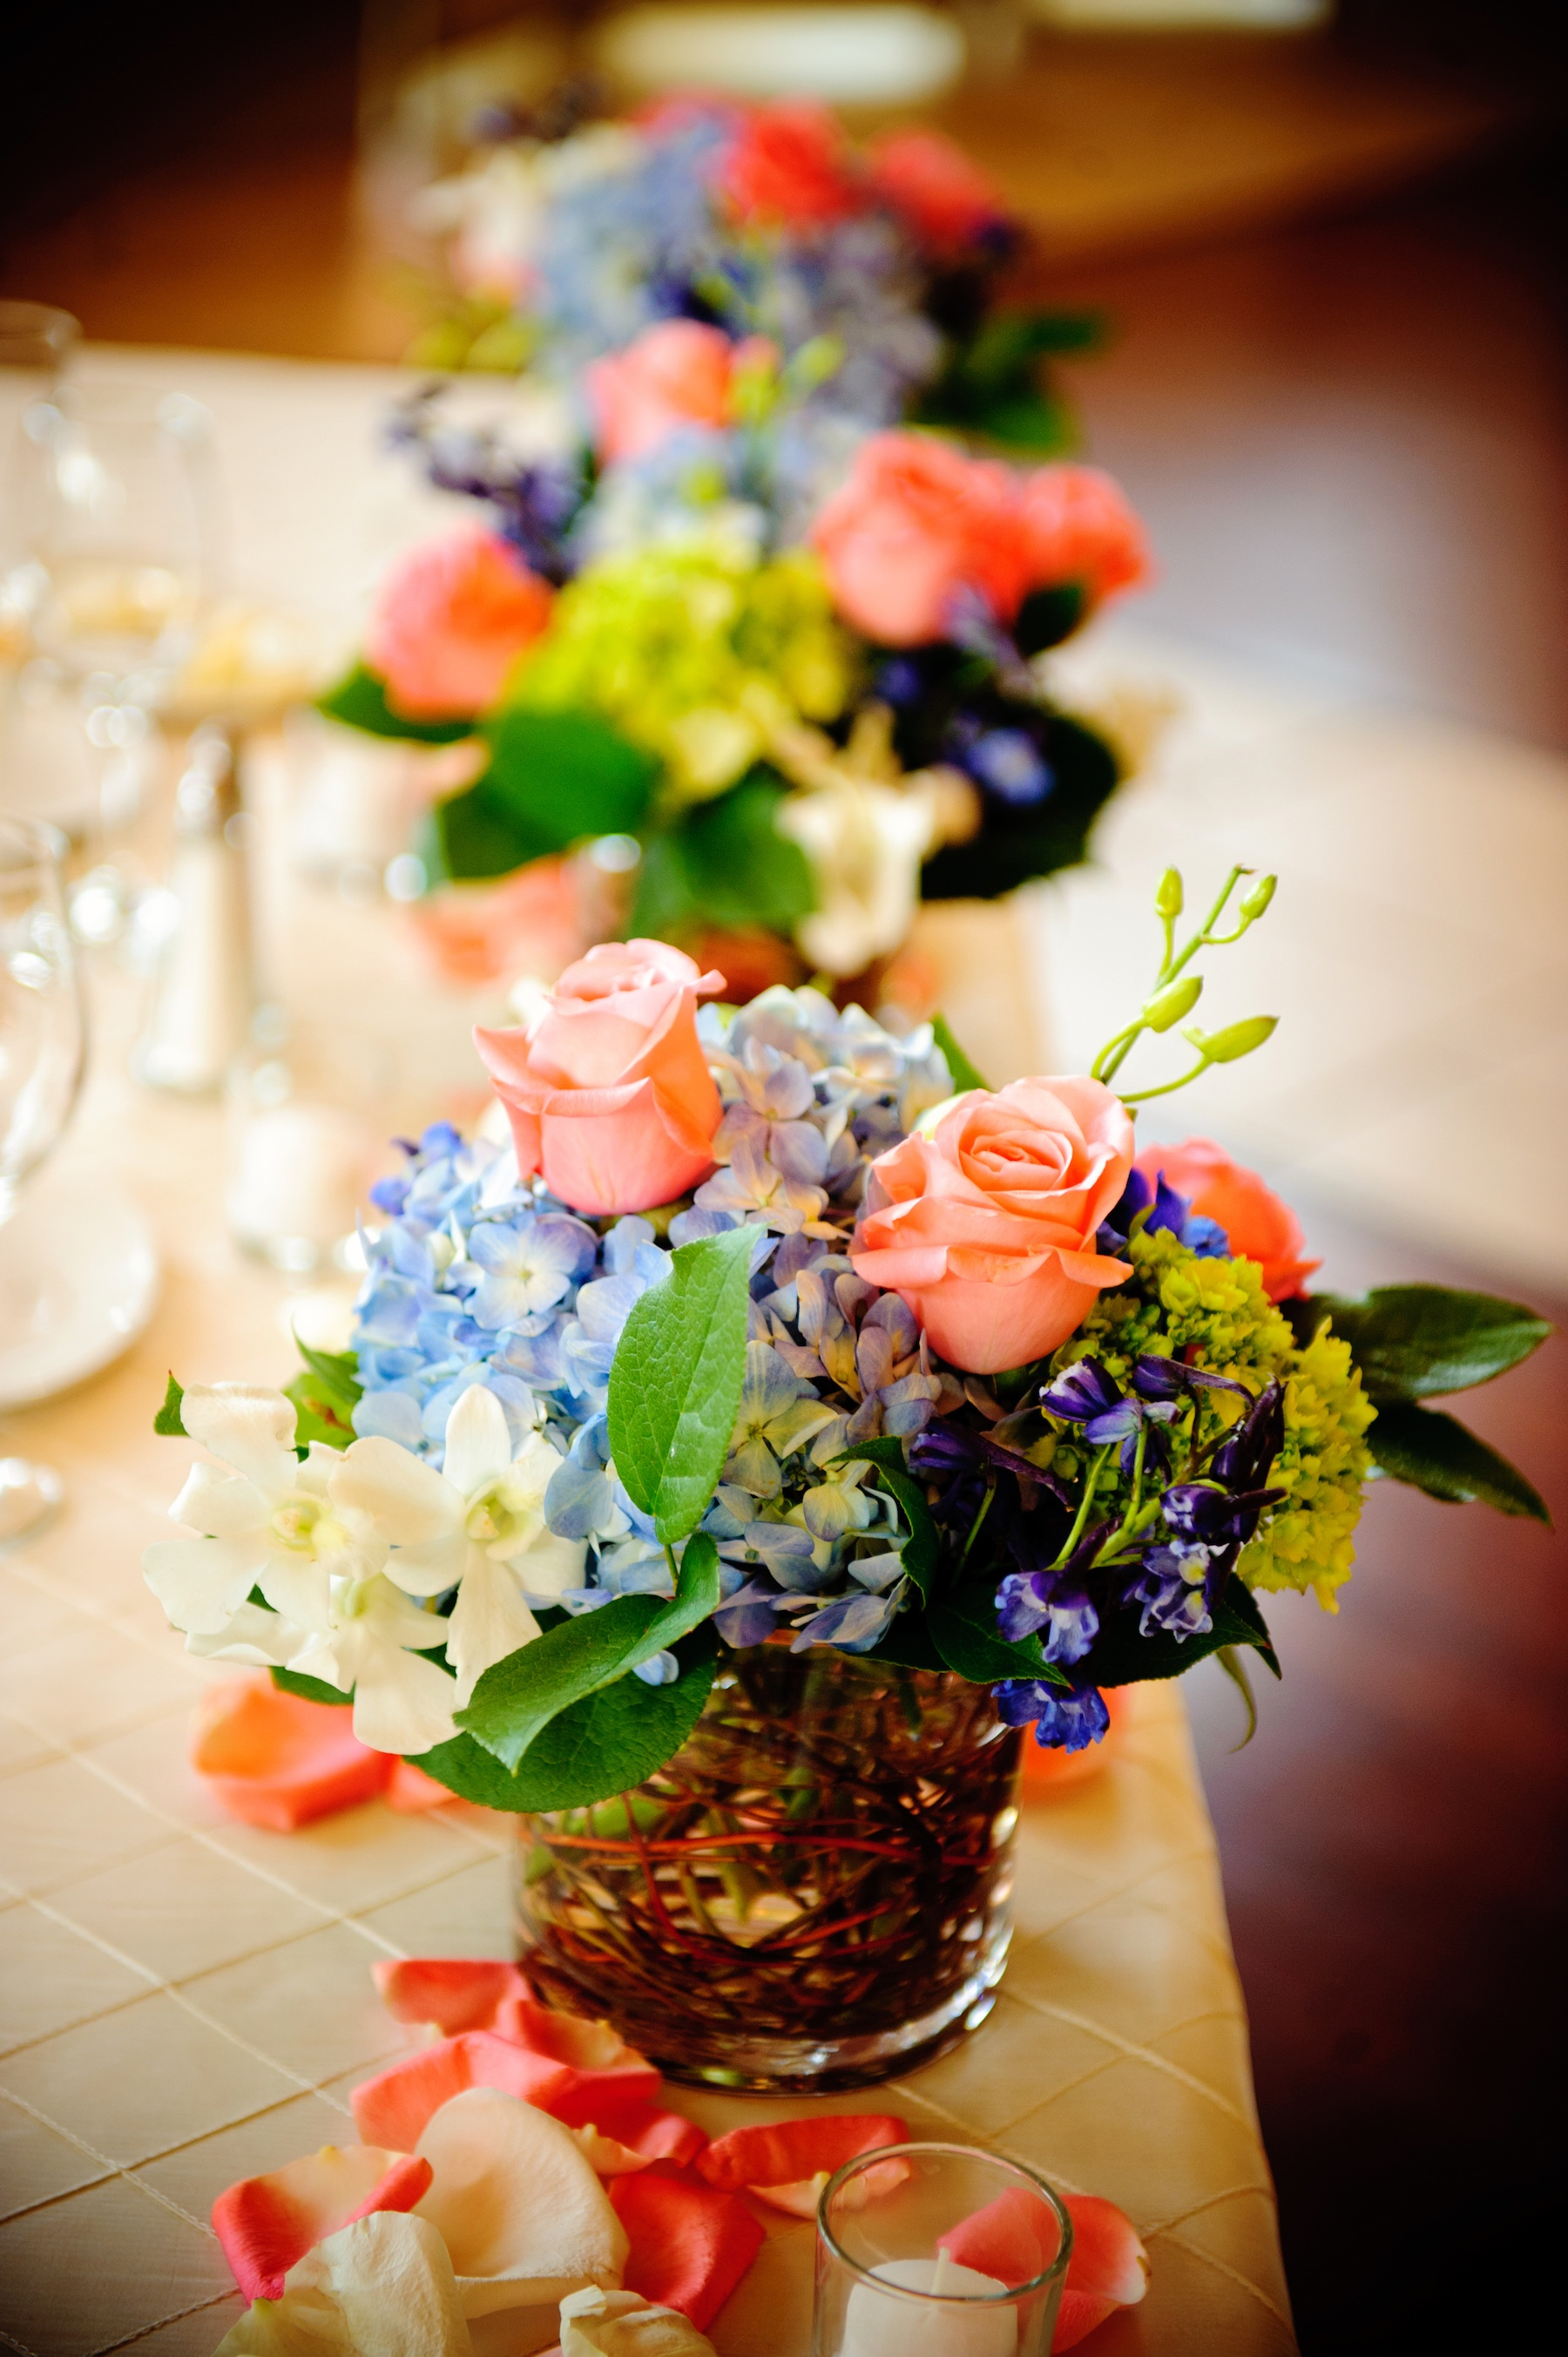 Elegant-real-wedding-with-simple-diy-details-pretty-spring-centerpieces.original